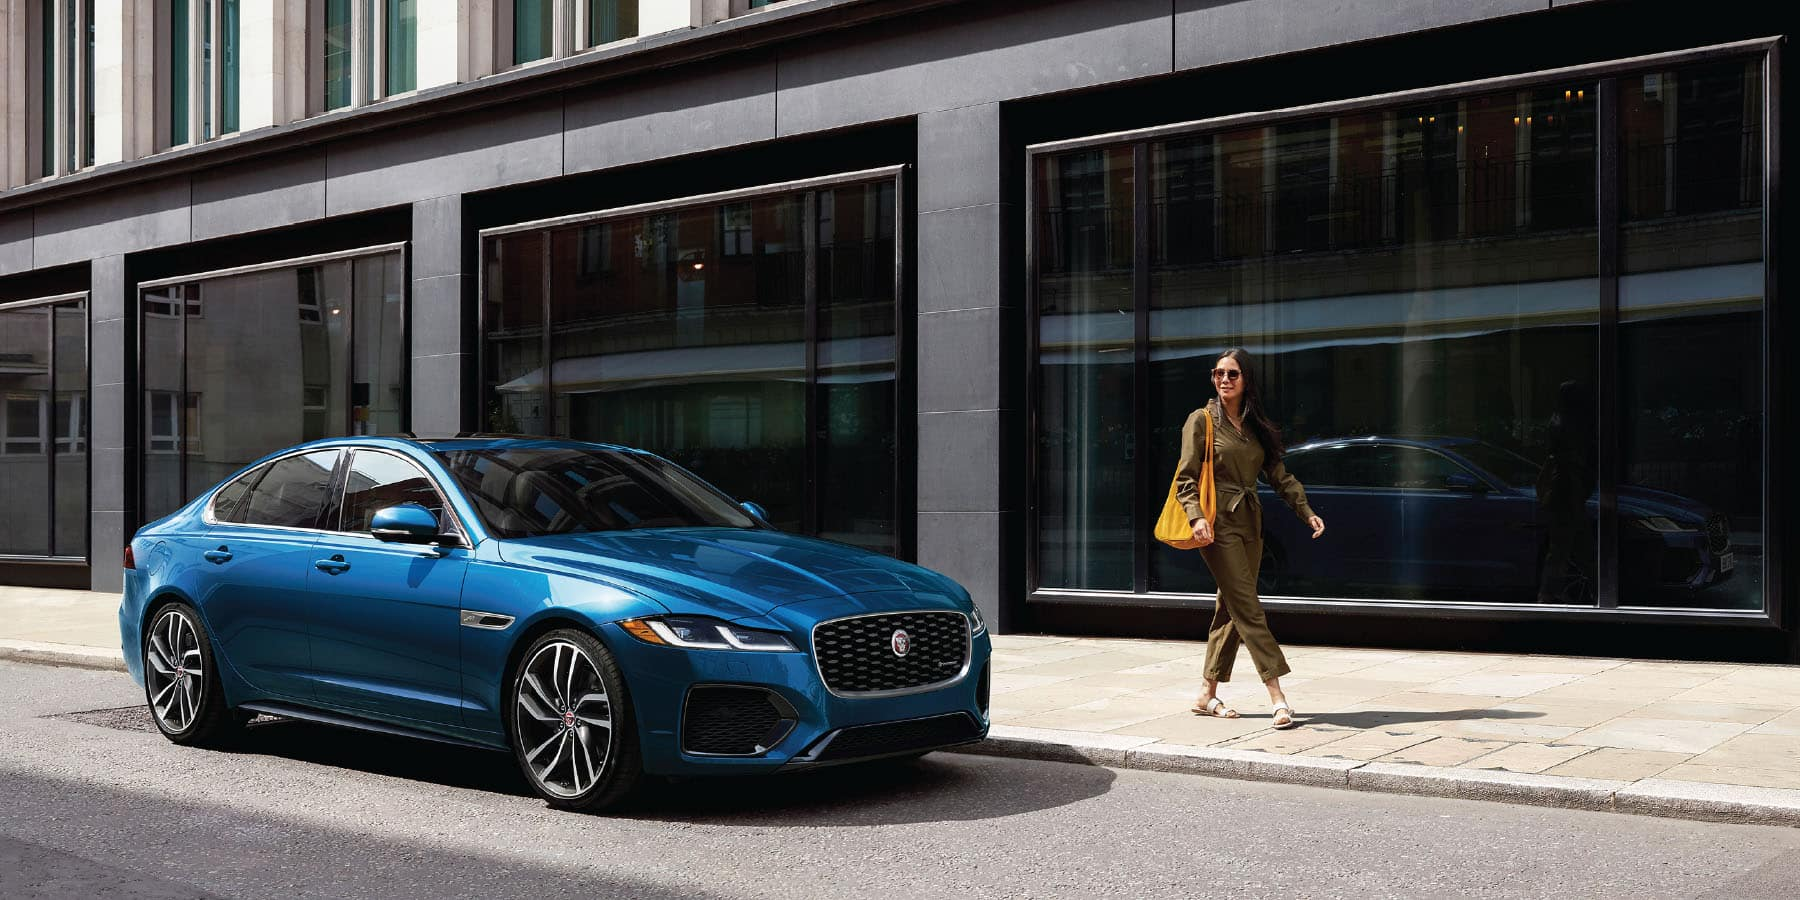 Welcome to Autobahn Jaguar Fort Worth!